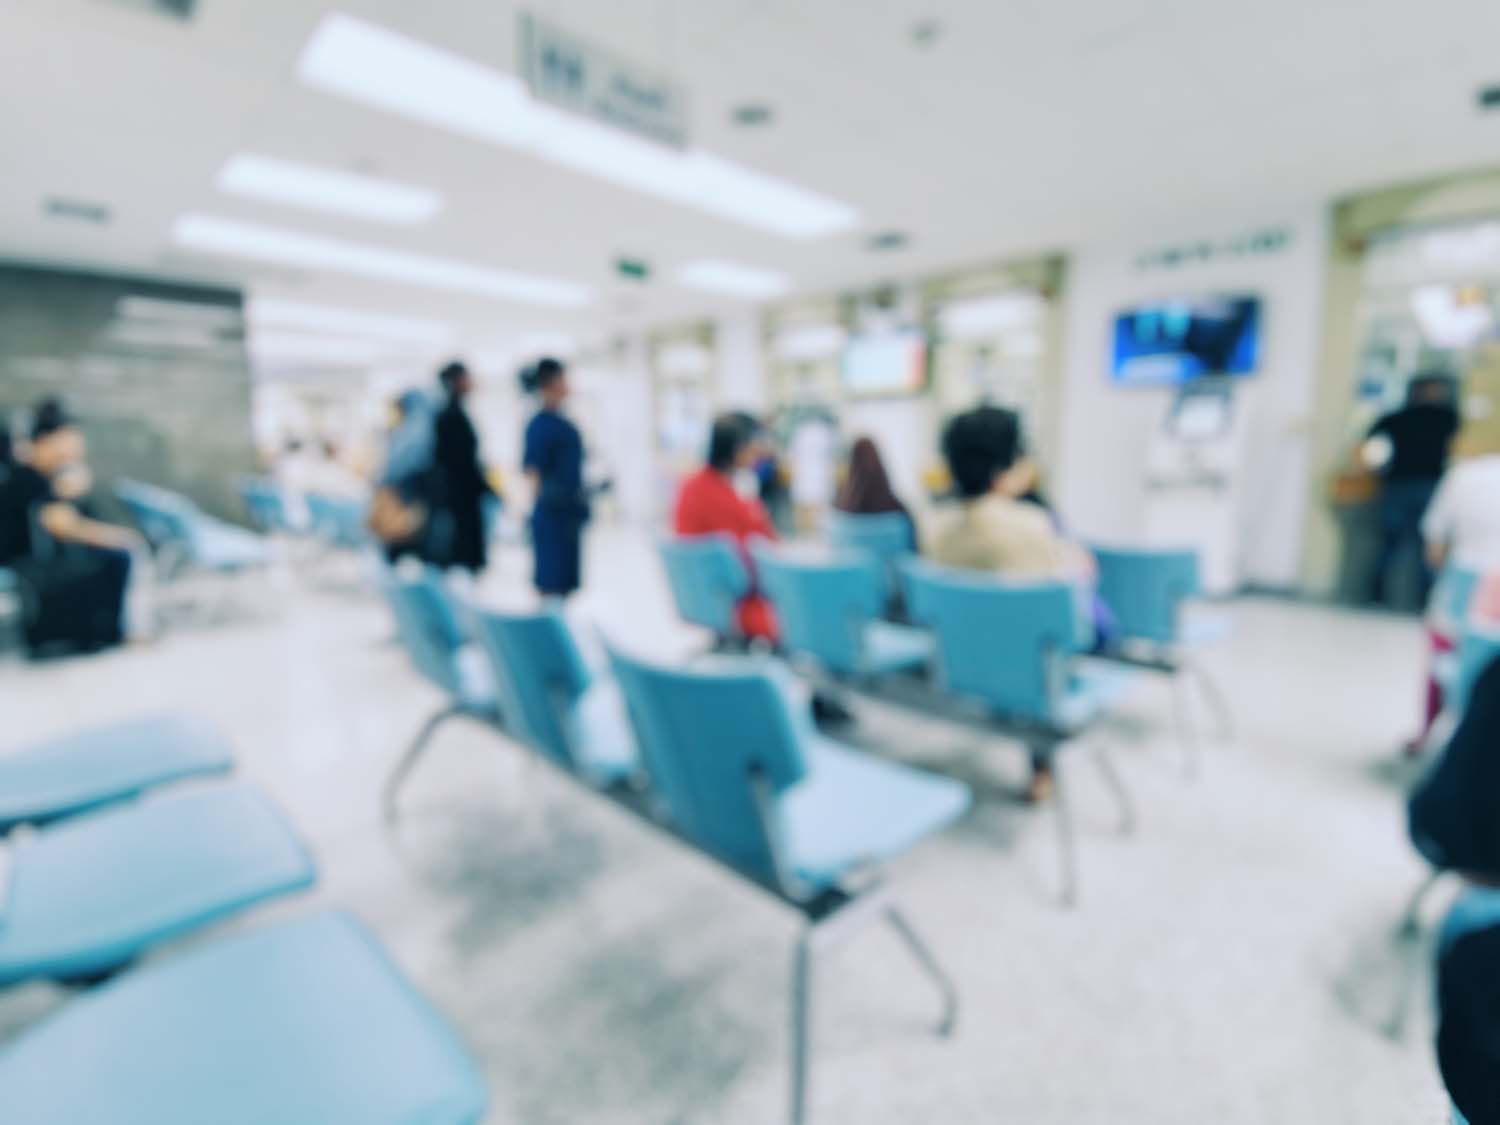 Interior view of Waiting Room in Emergency Room